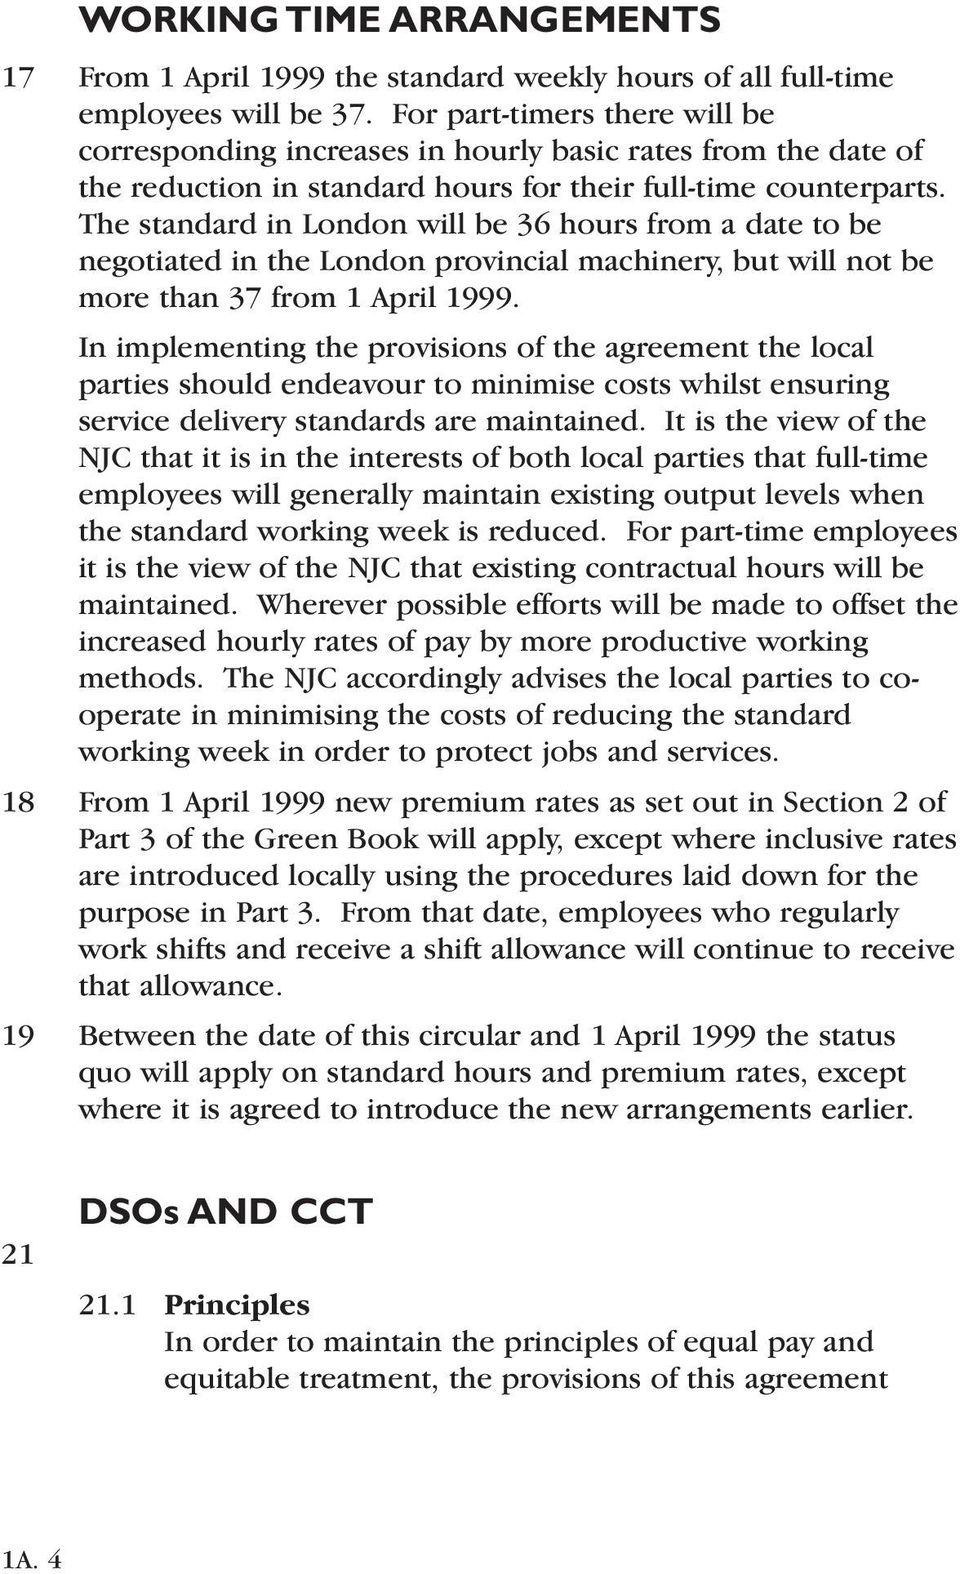 The standard in London will be 36 hours from a date to be negotiated in the London provincial machinery, but will not be more than 37 from 1 April 1999.